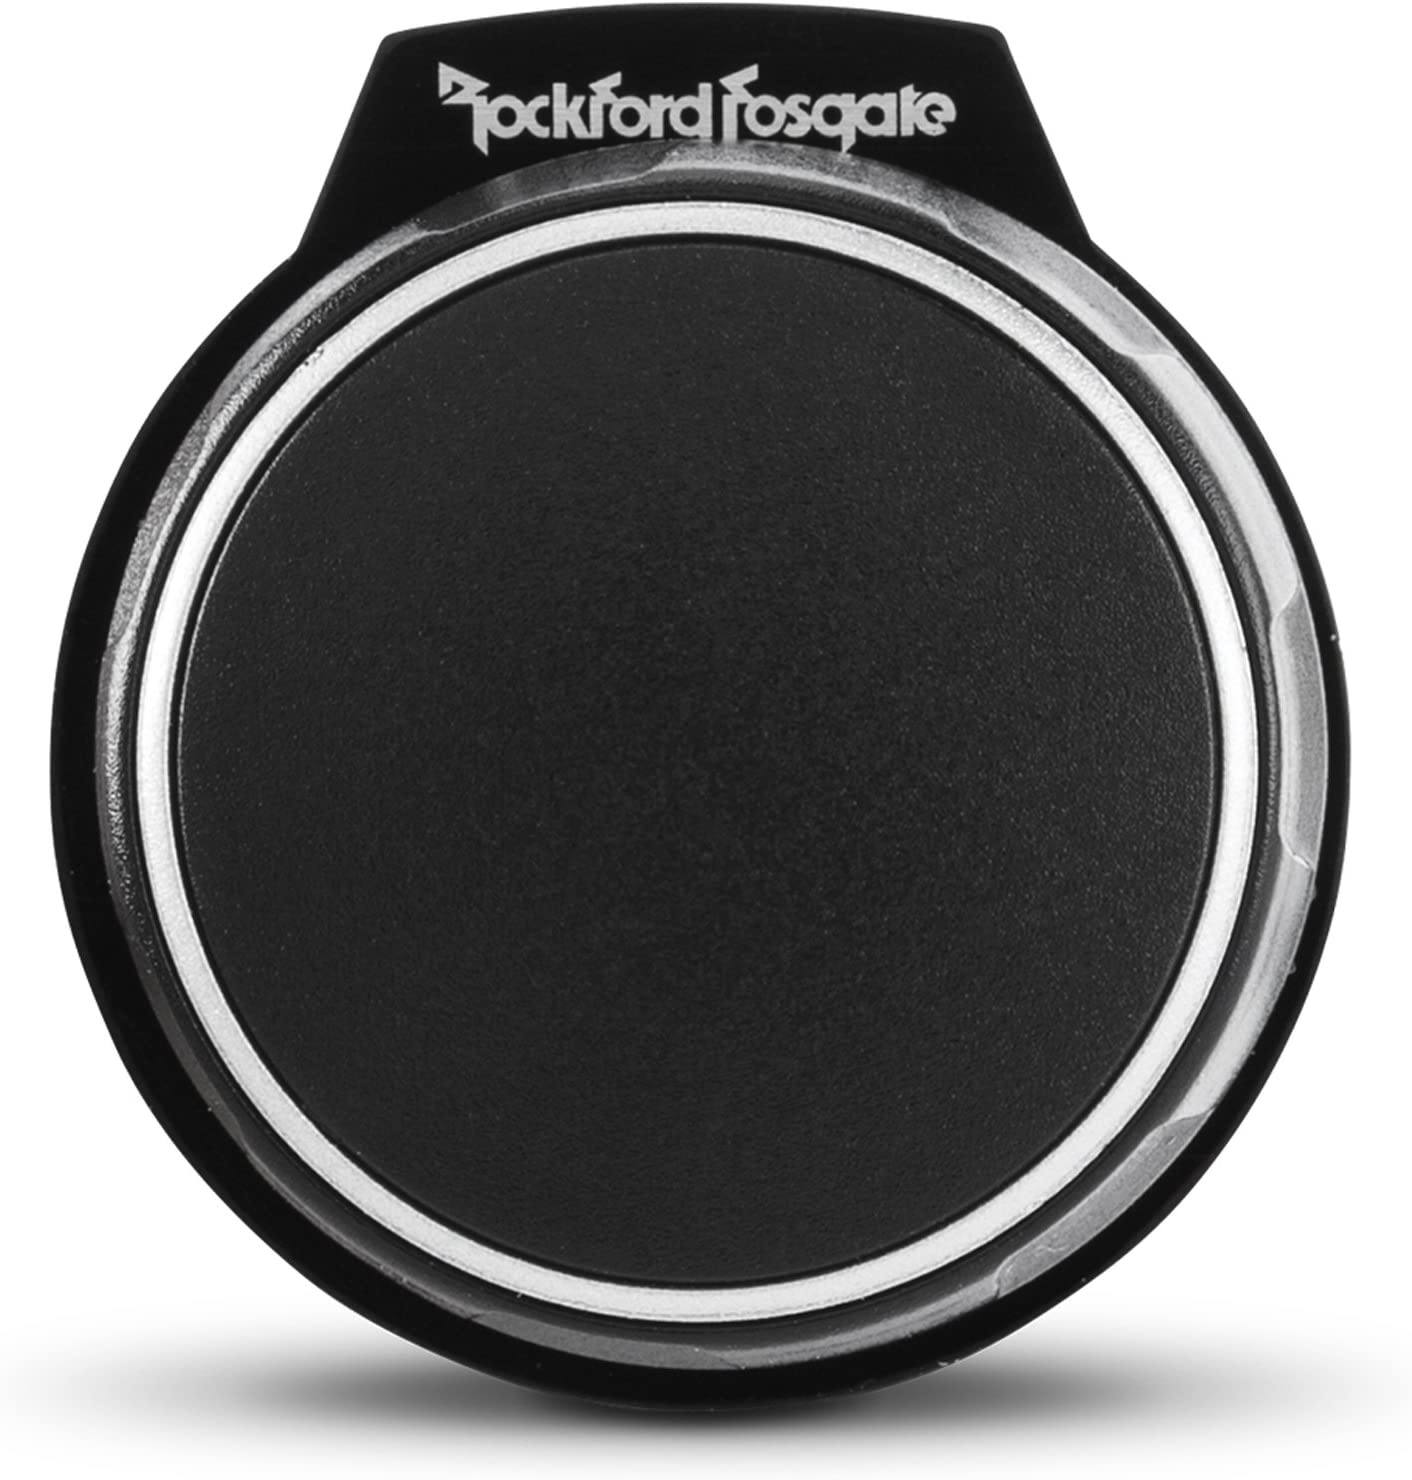 Rockford Fosgate PLC-U Universal Punch Level Control with 4 Mounting Options